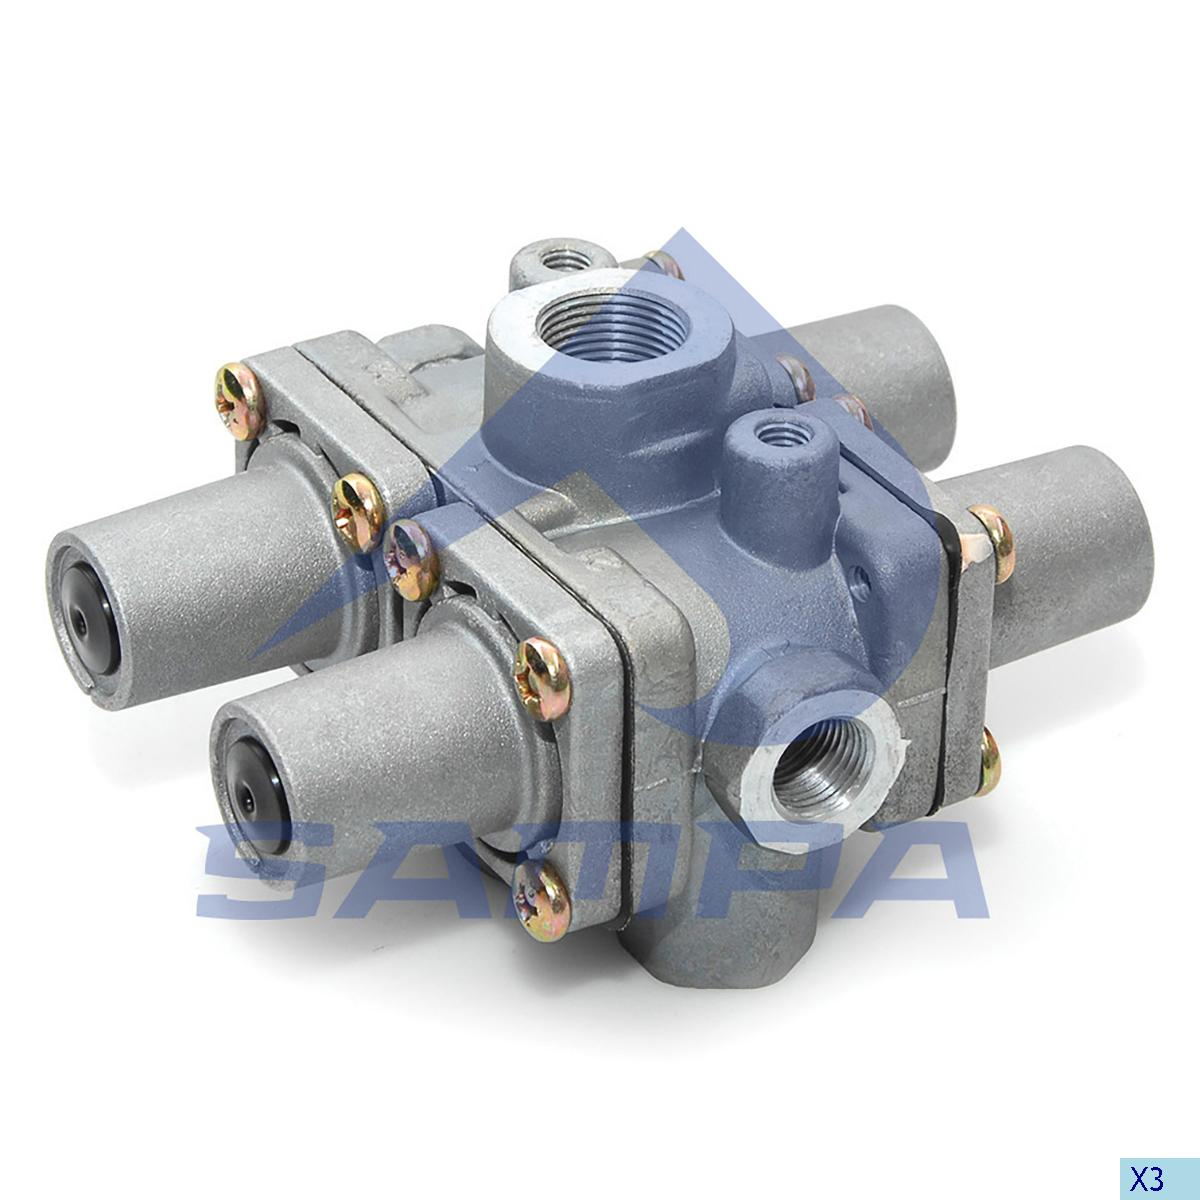 Multiway Valve, Daf, Compressed Air System